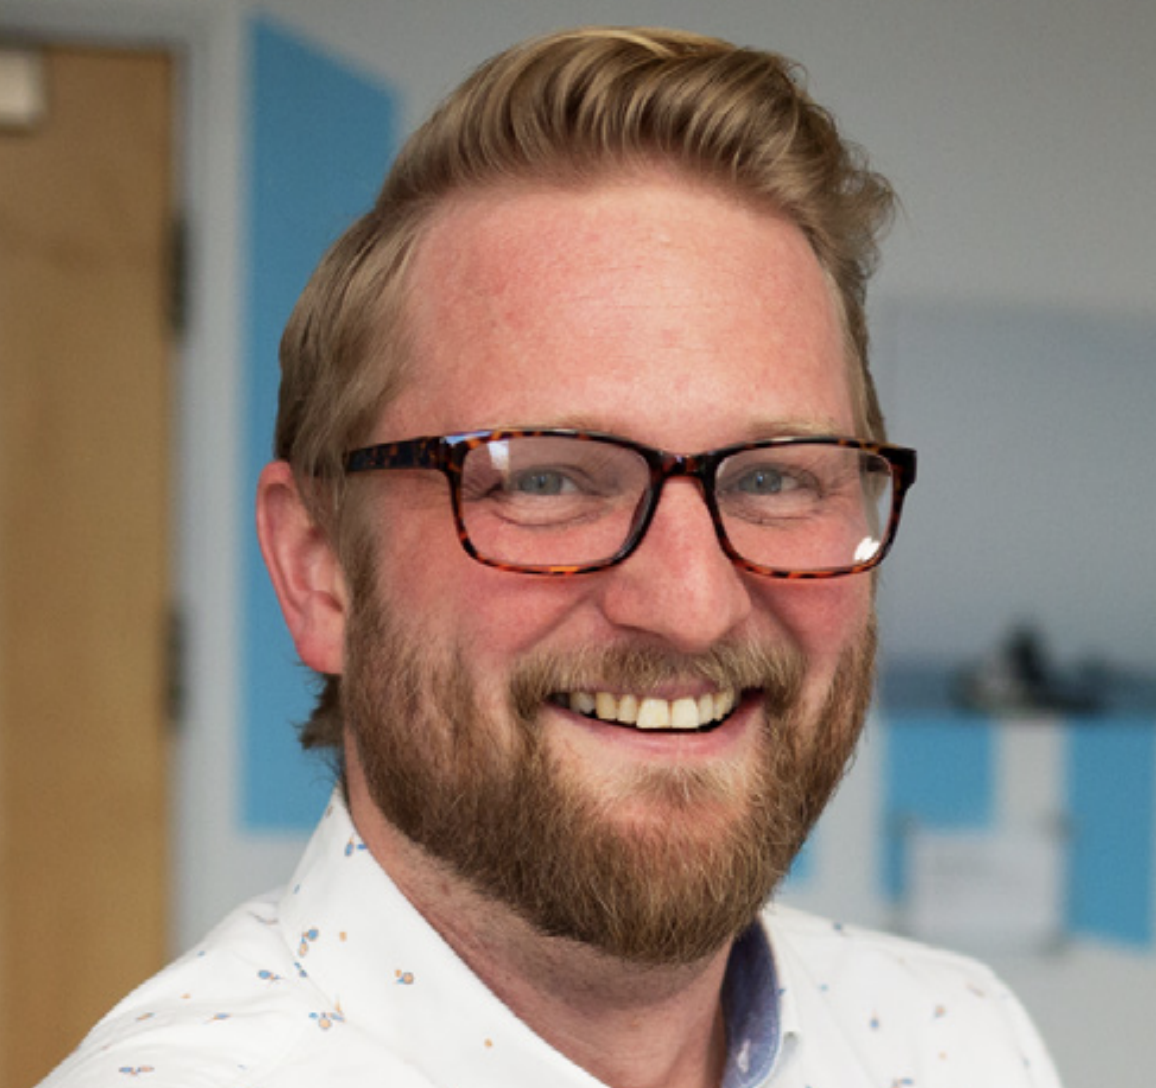 Richie Ramsden - Head of Data Science at AkzoNobel